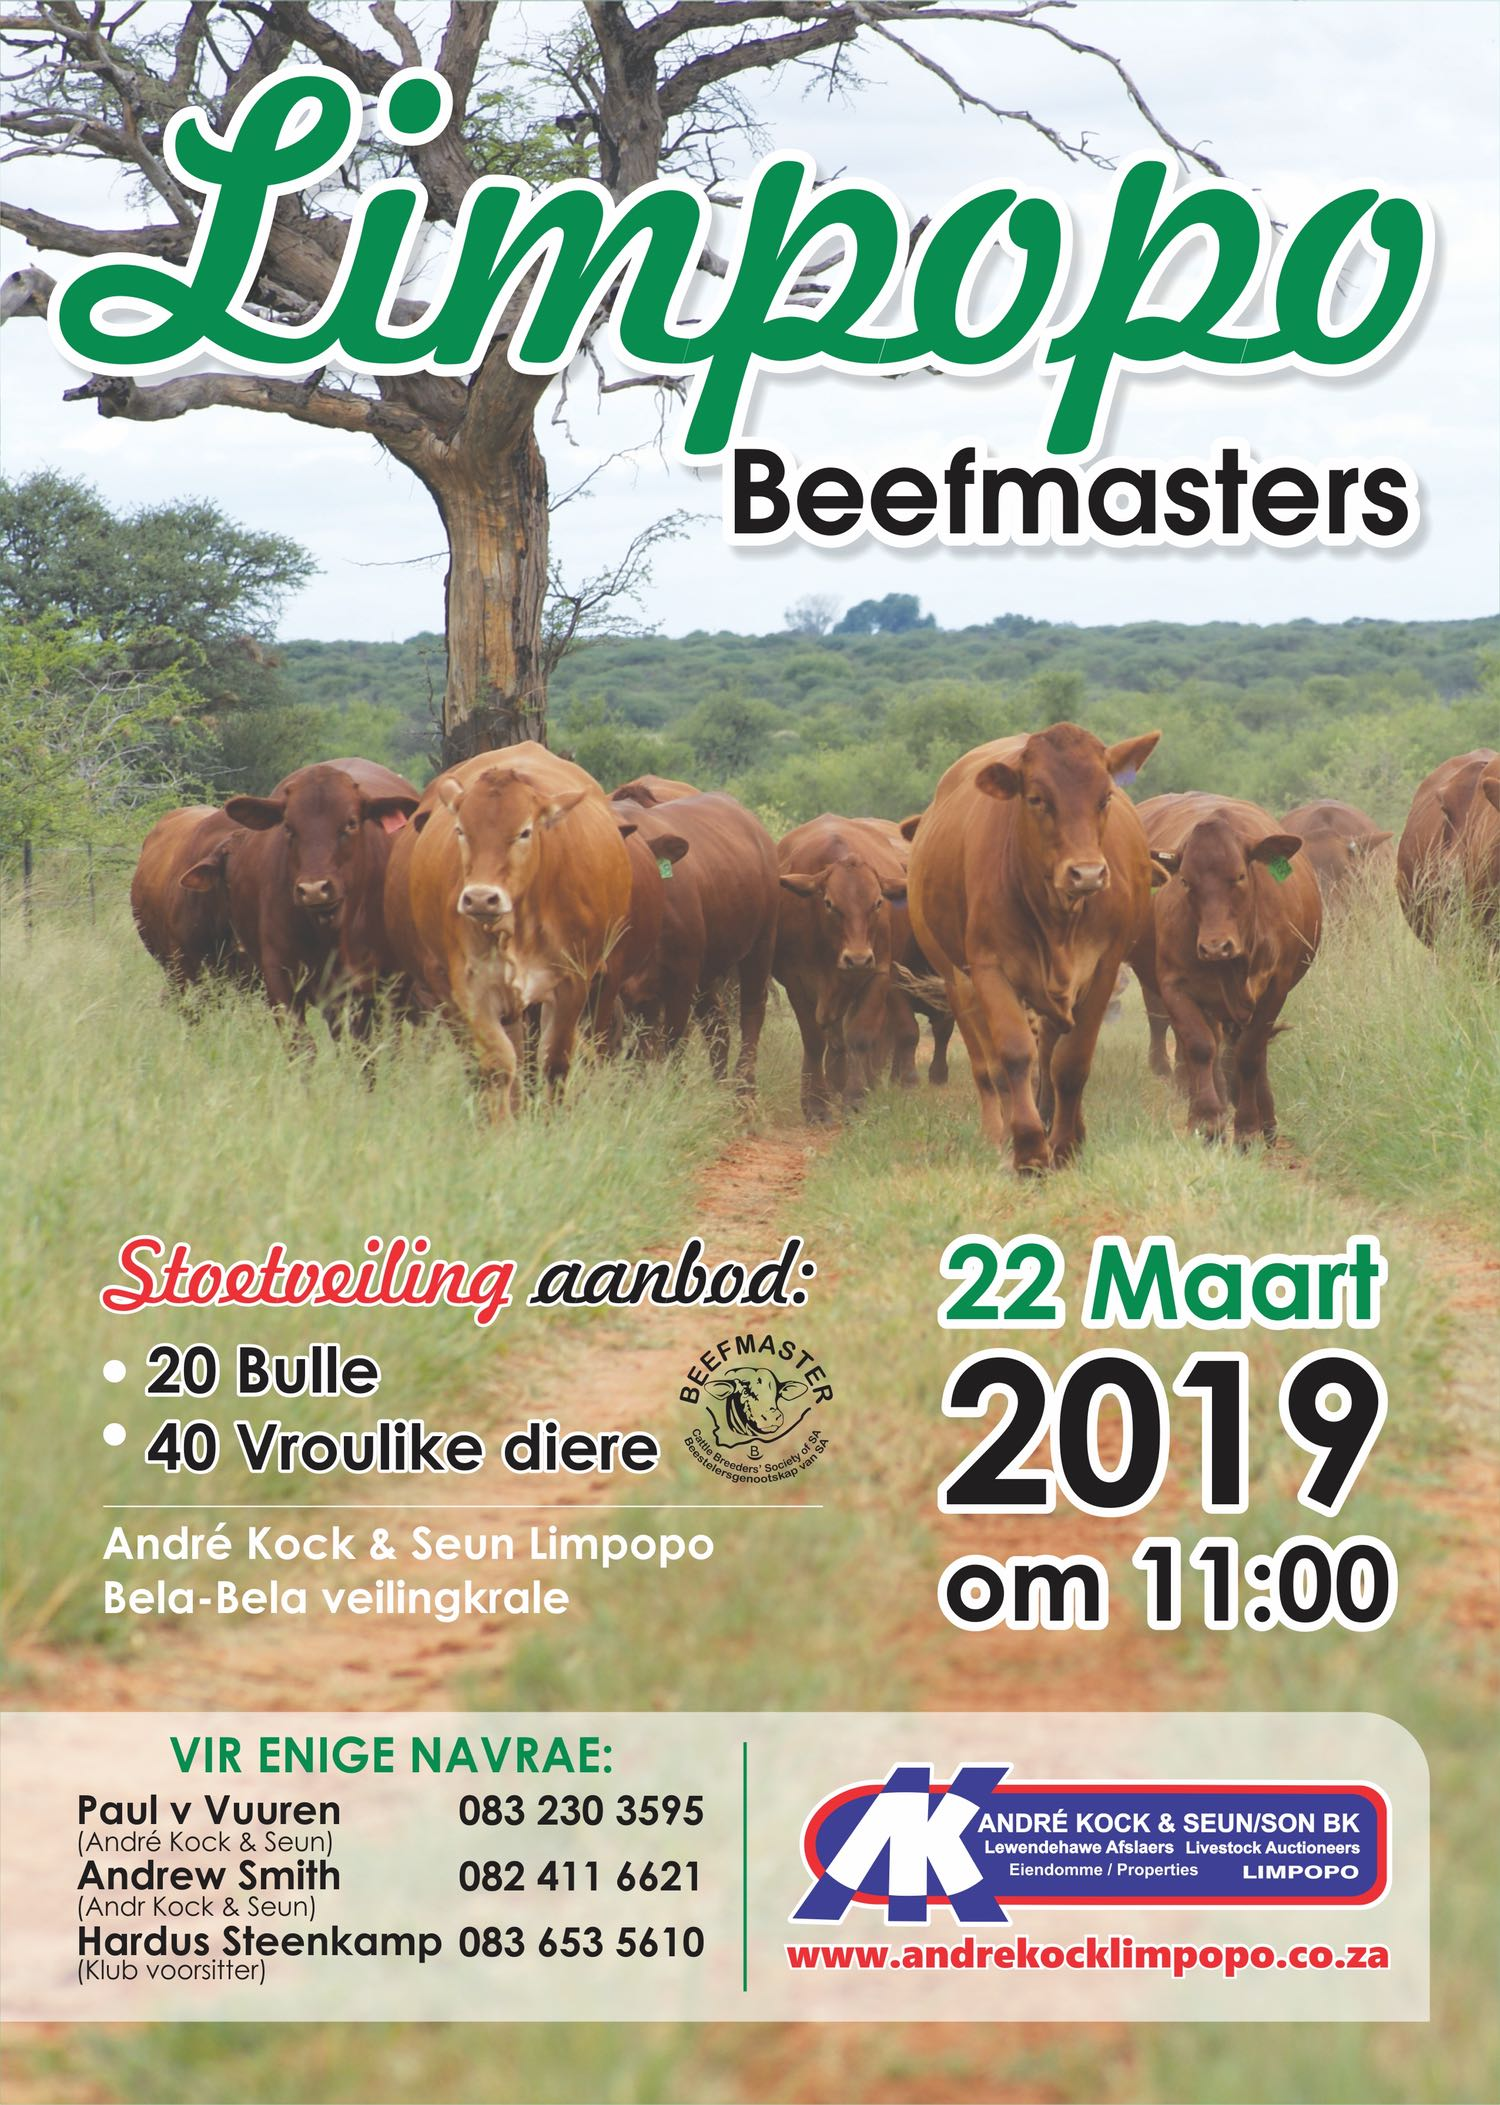 Limpopo Beefmasters – Andre Kock Limpopo